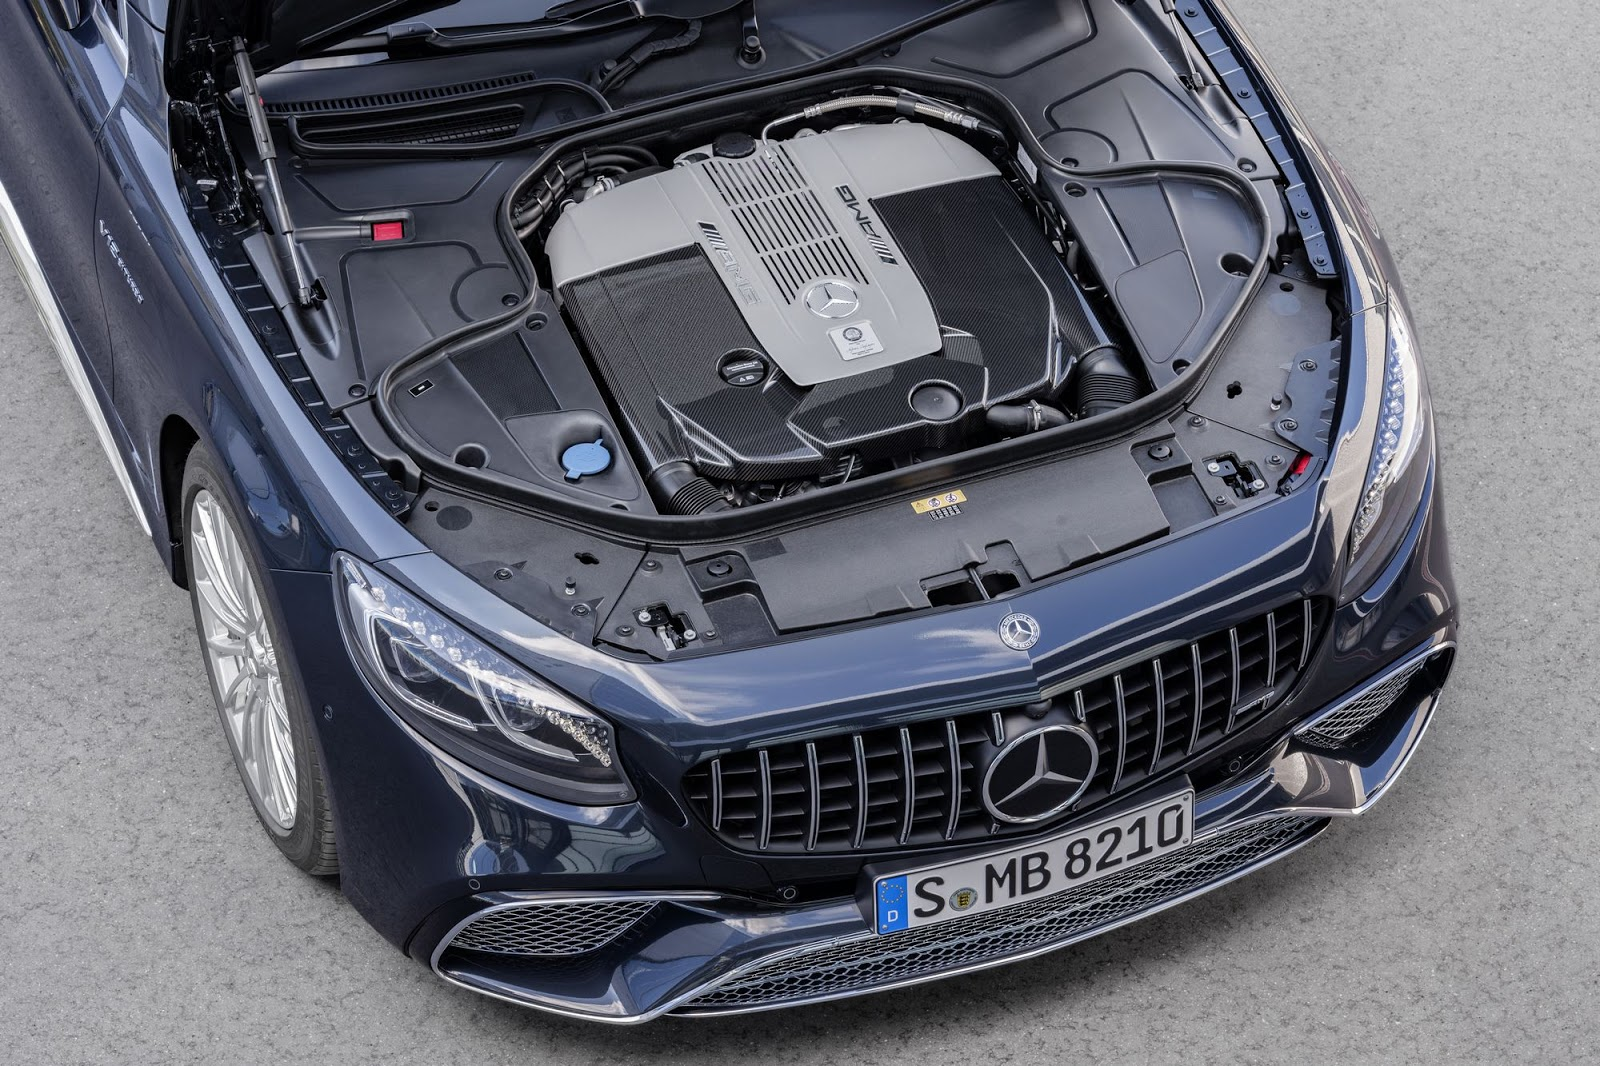 Mercedes-AMG S 65 Cabriolet, 2017. Exterieur: anthrazitblau metallic, Motor;Kraftstoffverbrauch kombiniert: 12,0 l/100 km; CO2-Emissionen kombiniert: 272 g/km*